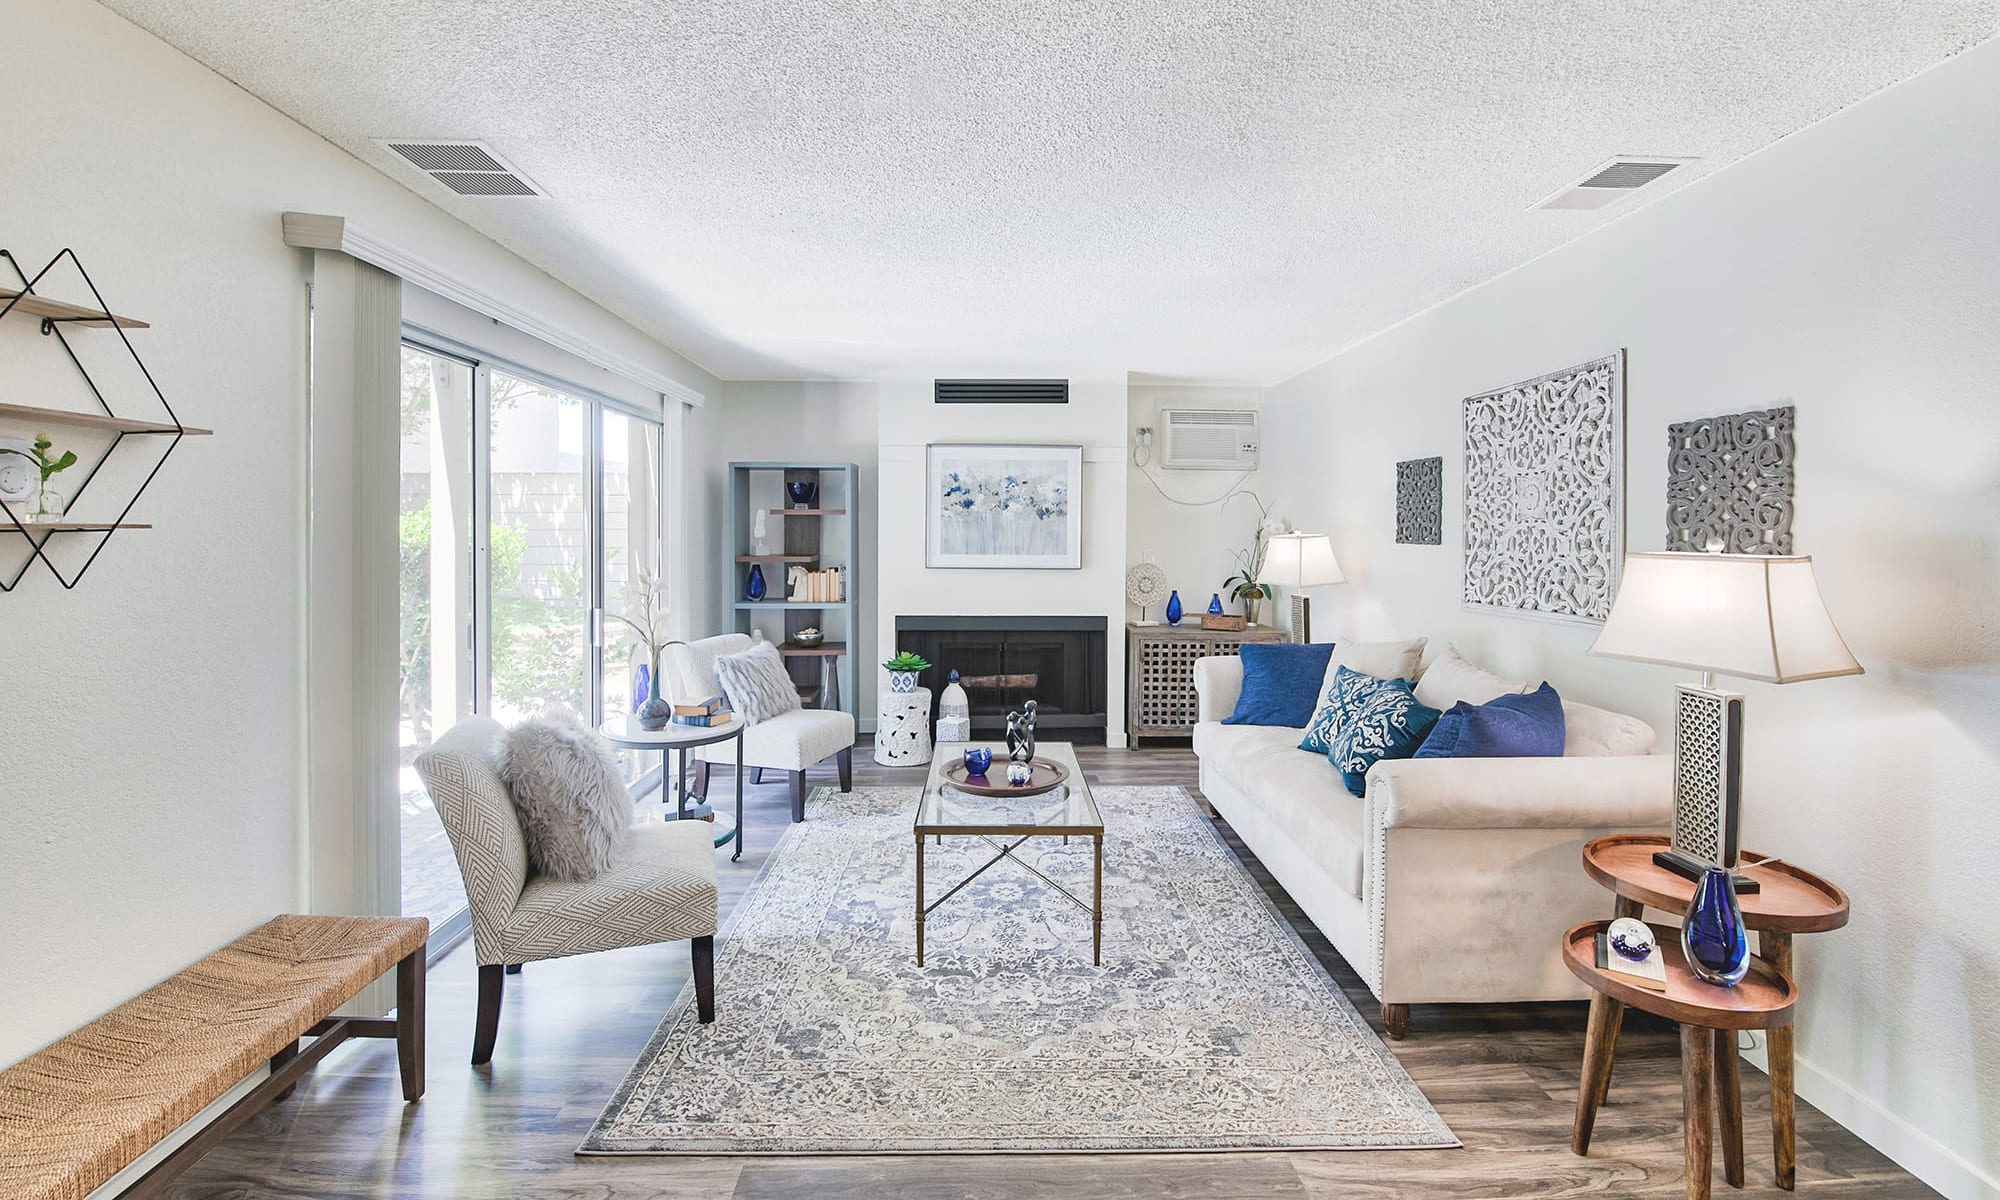 Bright and spacious open-concept living area in a model apartment at Mediterranean Village Apartments in Costa Mesa, California